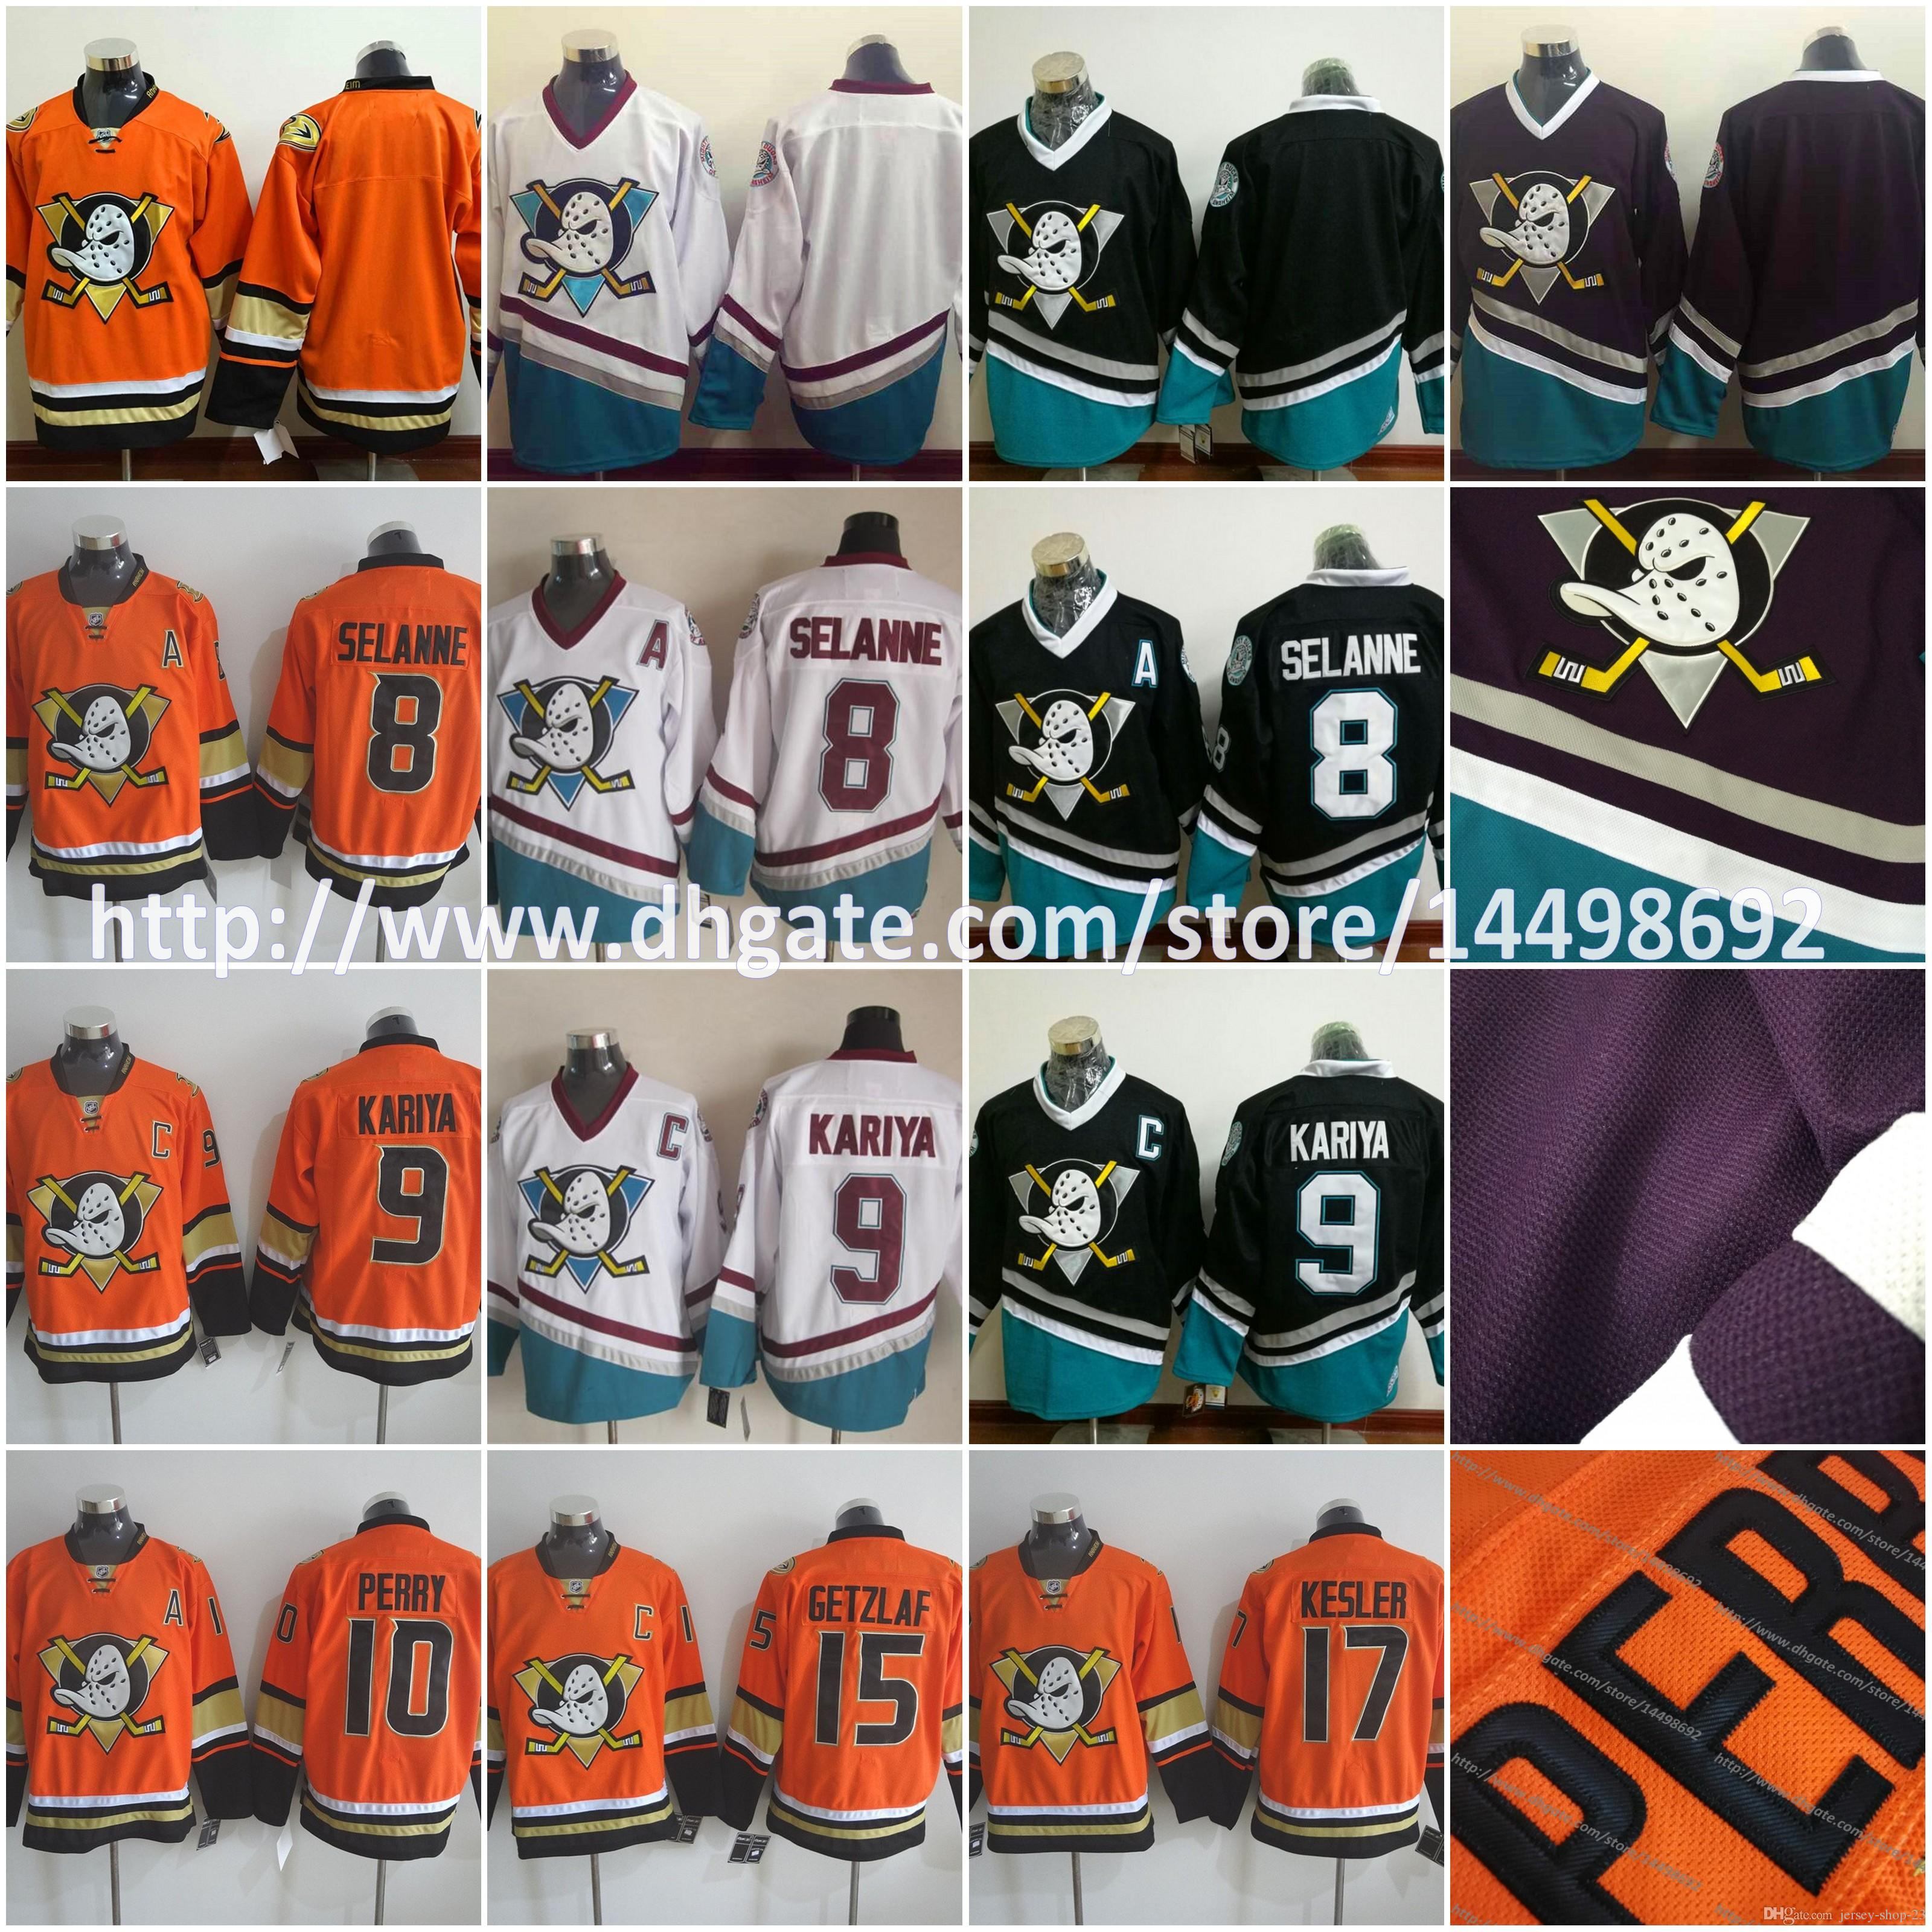 Hommes Mighty Ducks Blank 8 Teemu Selanne 9 Paul Kariya 15 Ryan Getzlaf 10 Corey